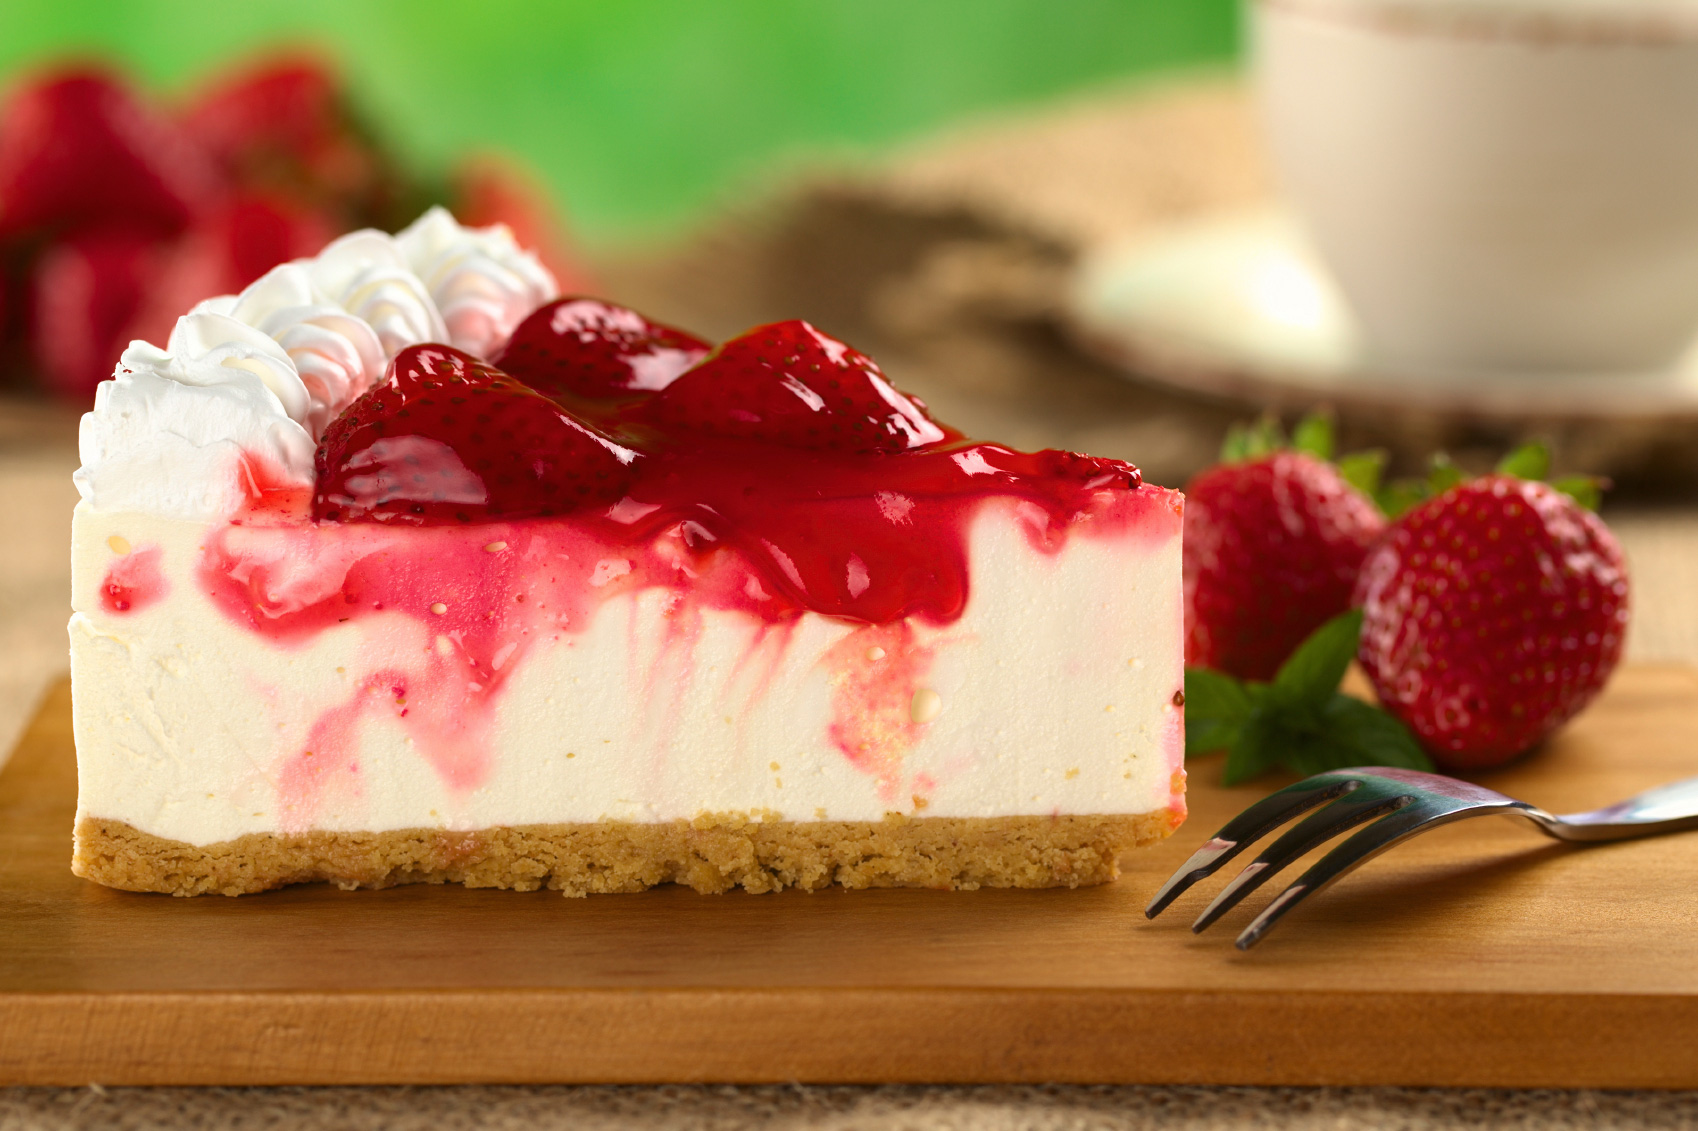 Strawberry-Cheesecake-with-Strawberry-Syrup.jpg